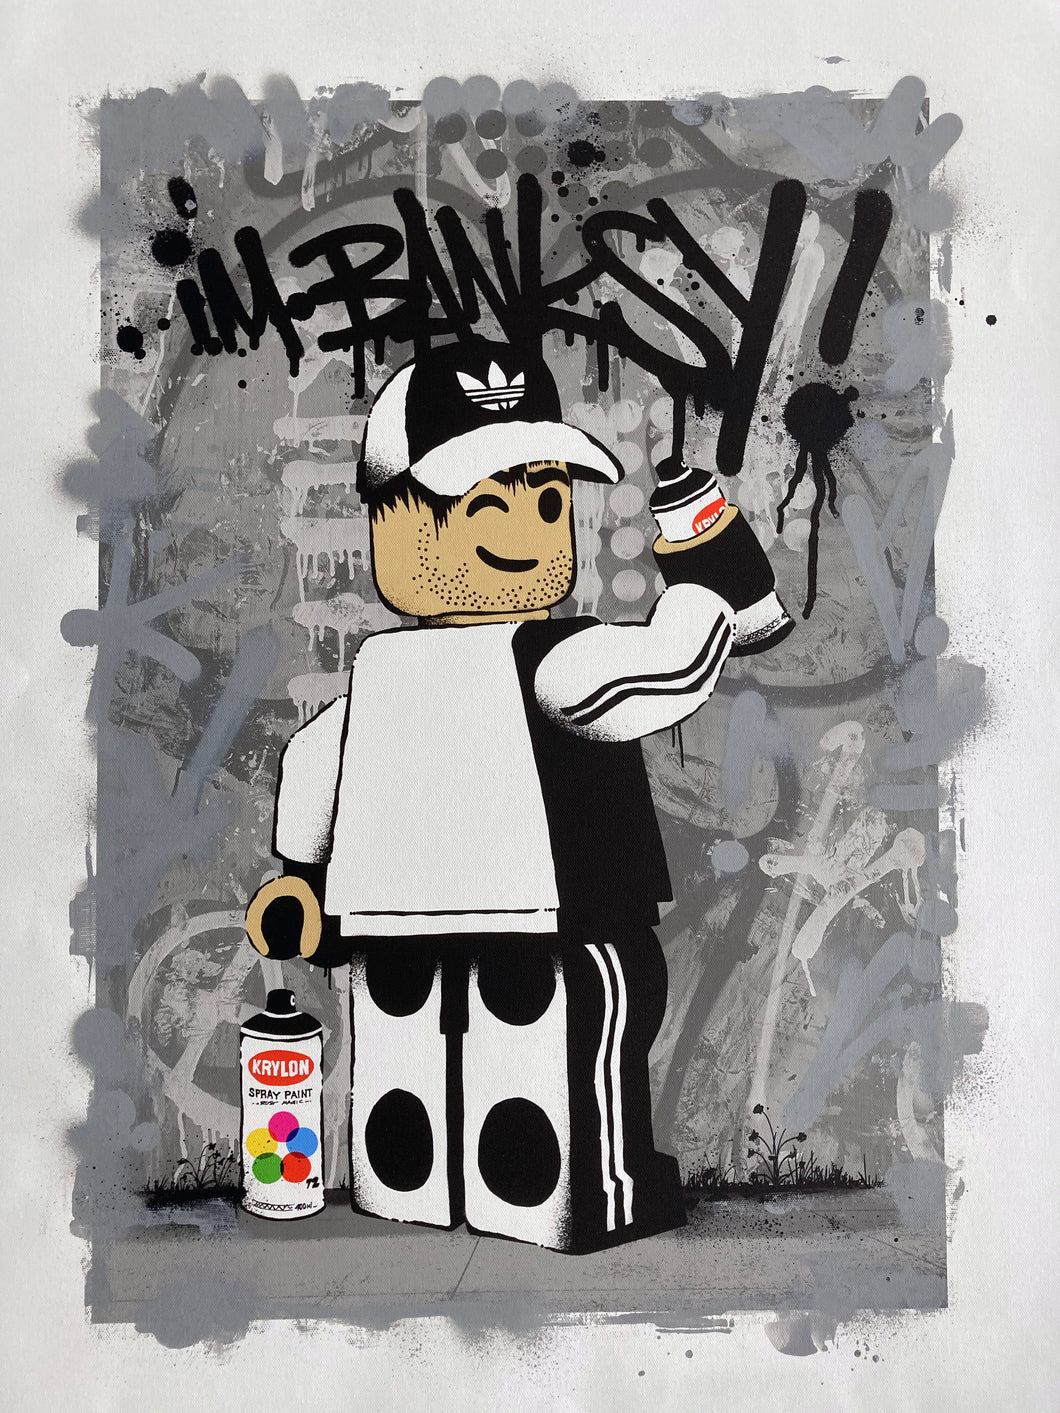 Ame72 Summer Lockdown Show Hand Embellished Canvas For Sale I'm Banksy